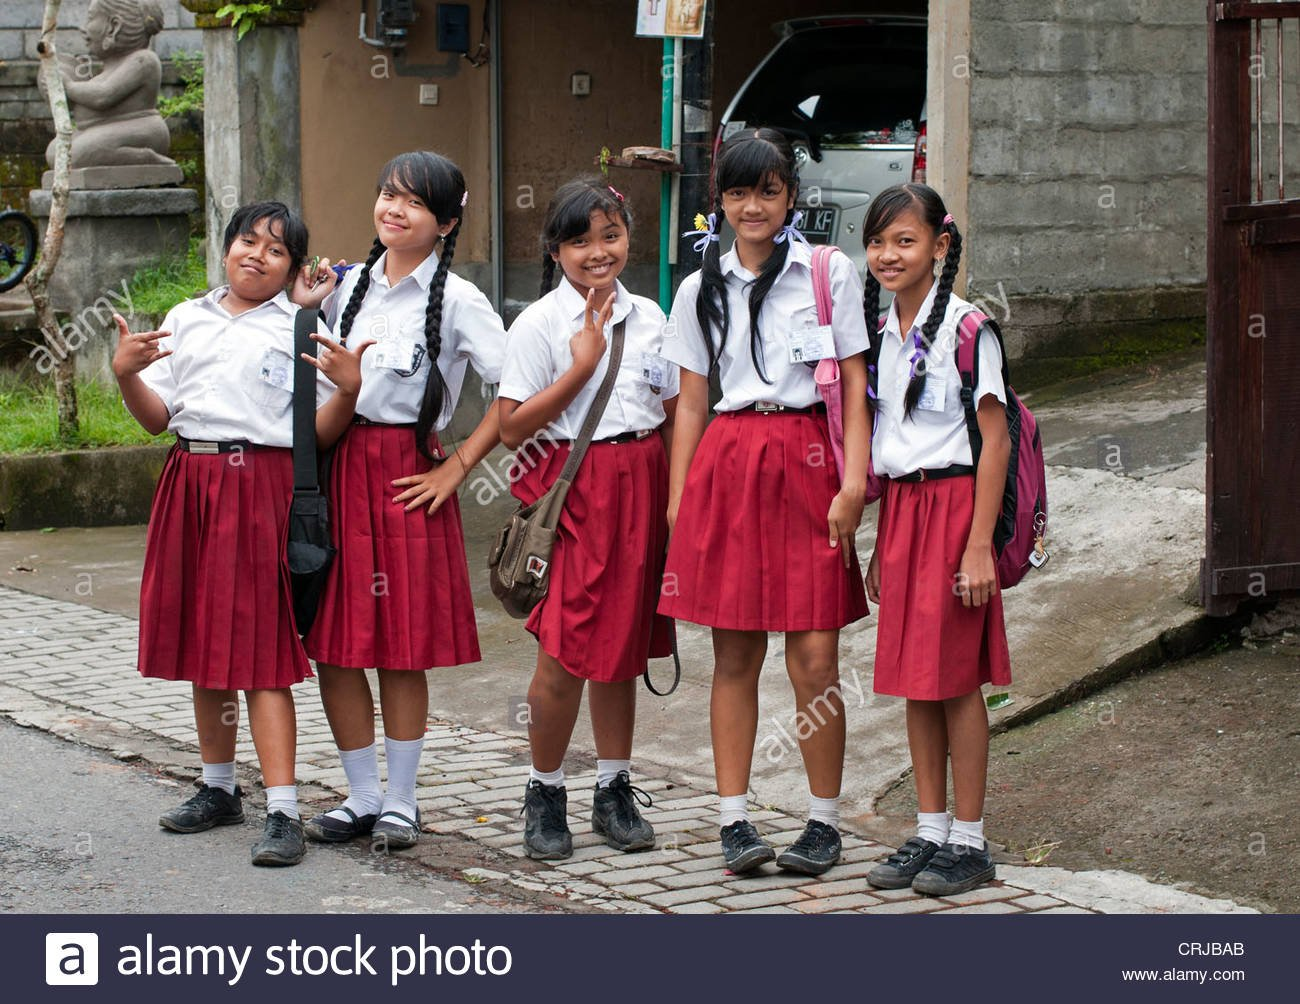 ubud-5-april-2011-young-school-girls-in-uniform-on-the-stret-having-CRJBAB.jpg